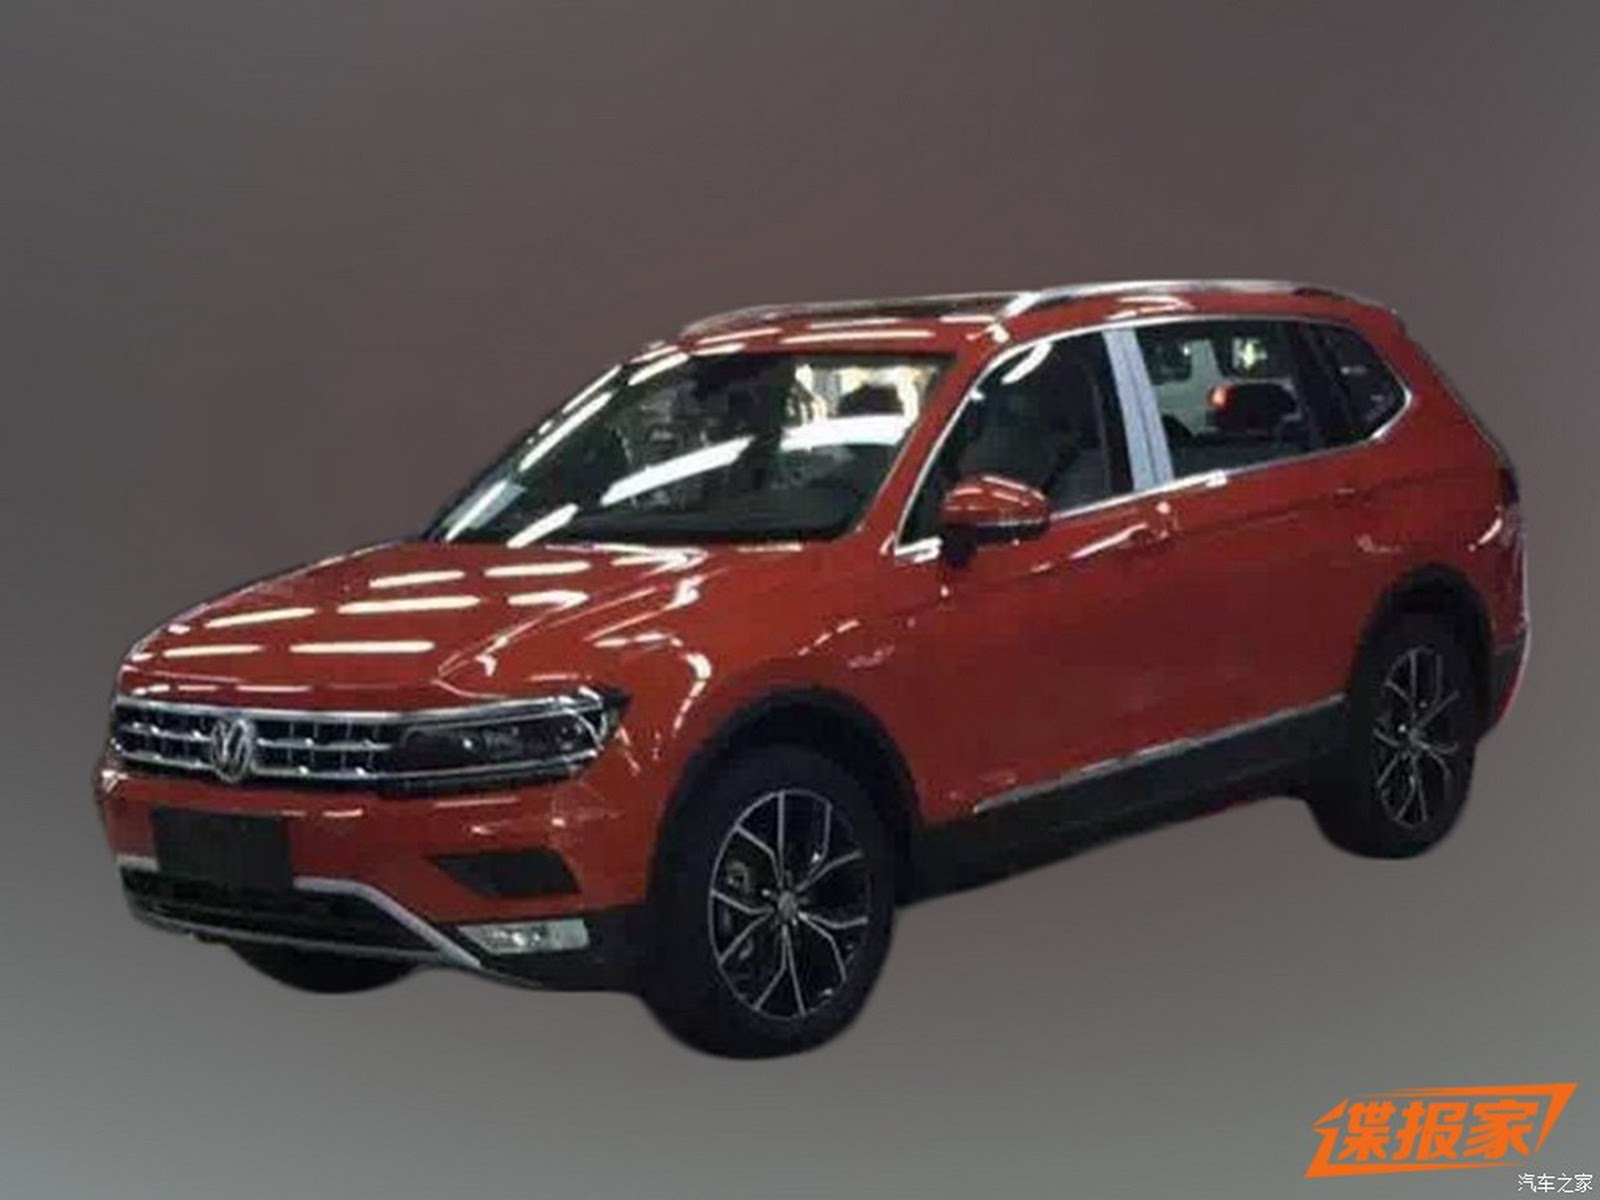 2017 Volkswagen Tiguan XL Snapped by the Carparazzi in China ...